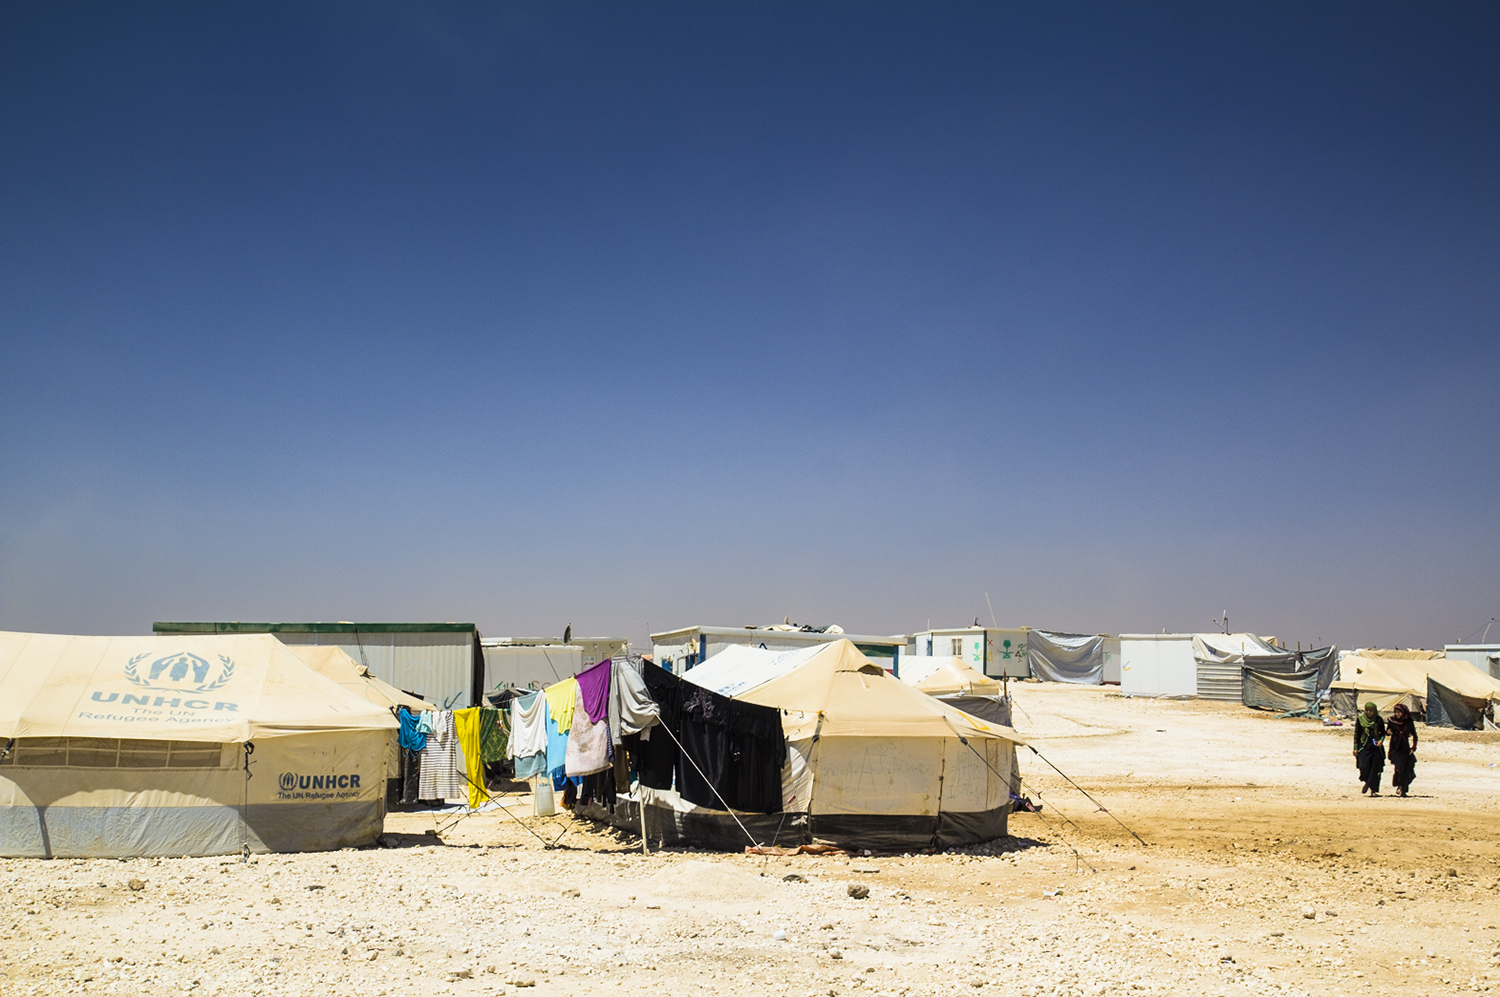 Zaatari, United Nations refugee camp for 80,000 Syrian refugees.